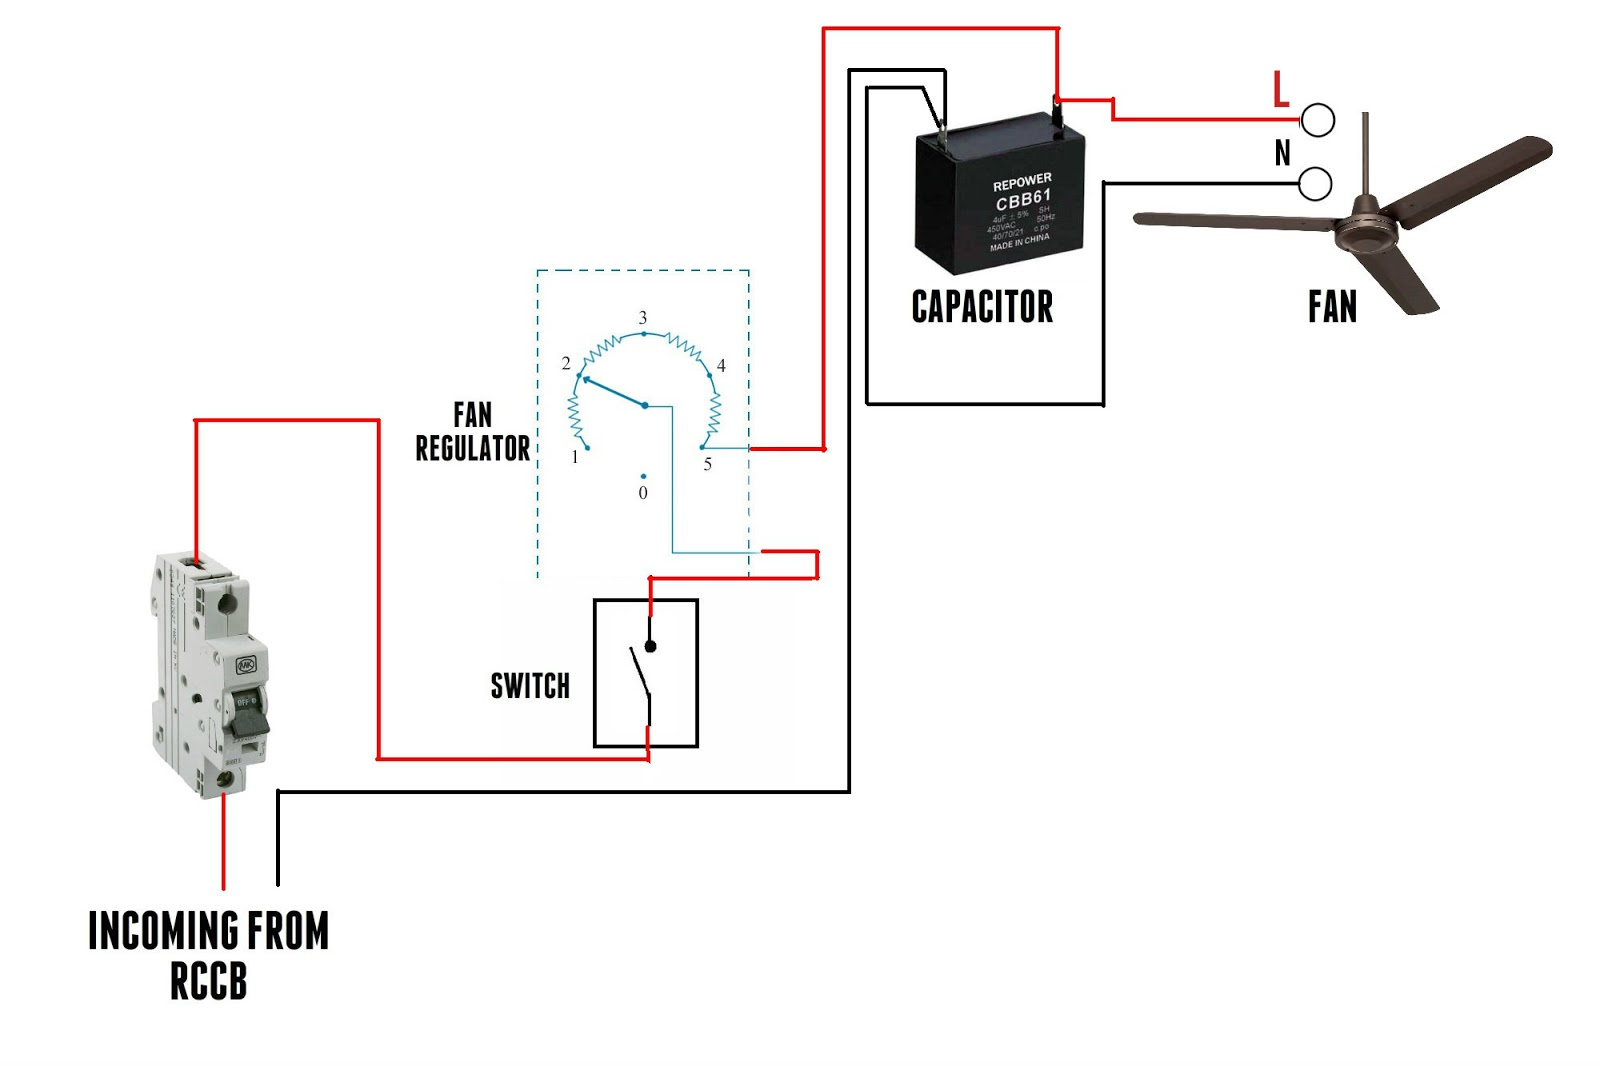 small resolution of there s a capacitor for the fan because it will stabilize voltage and the power factor after connect to the capacitor it connect to the regulator to change